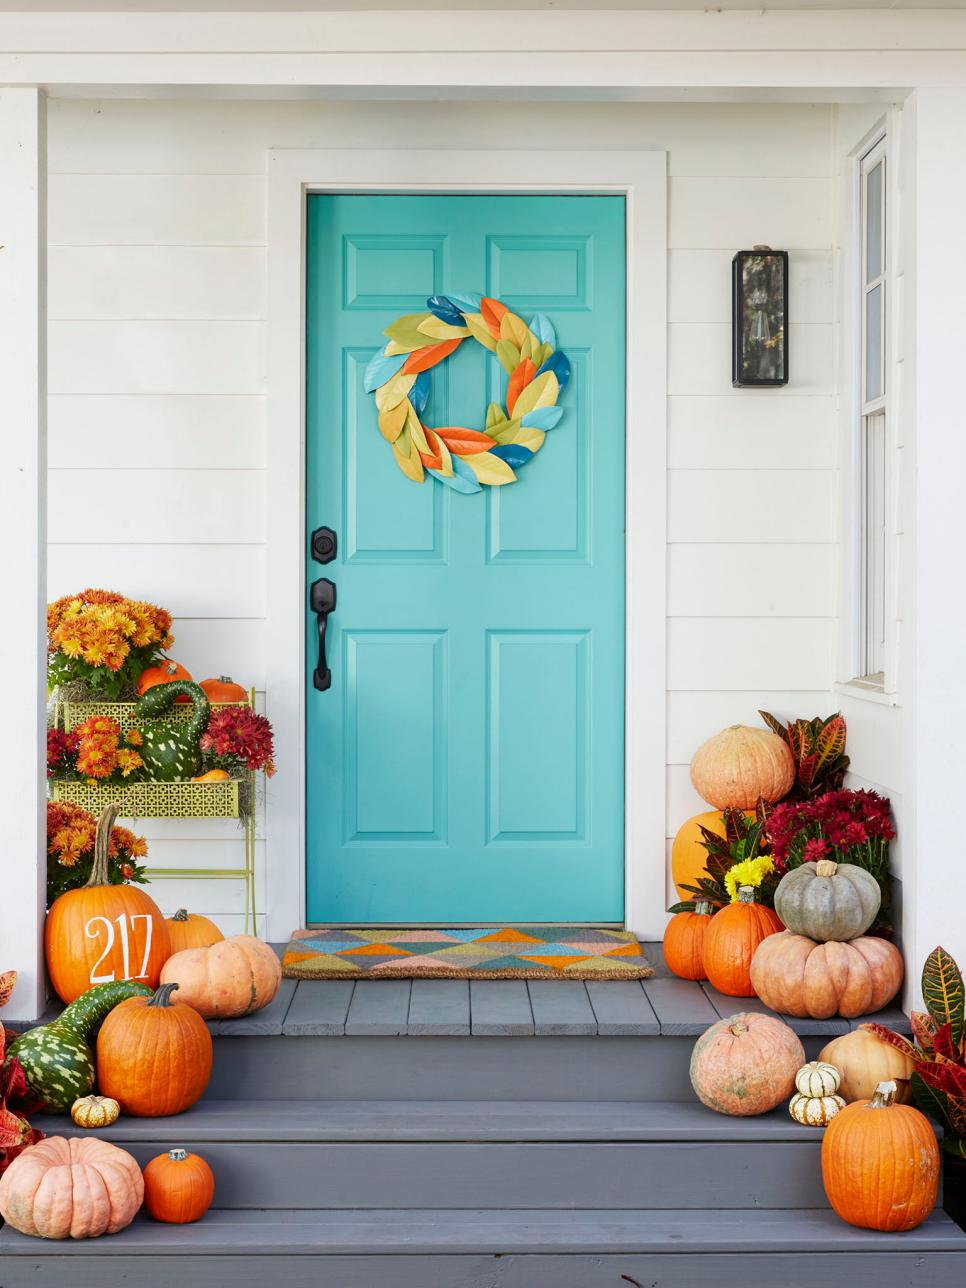 In Home Decorations Our Favorite Fall Decorating Ideas Hgtv